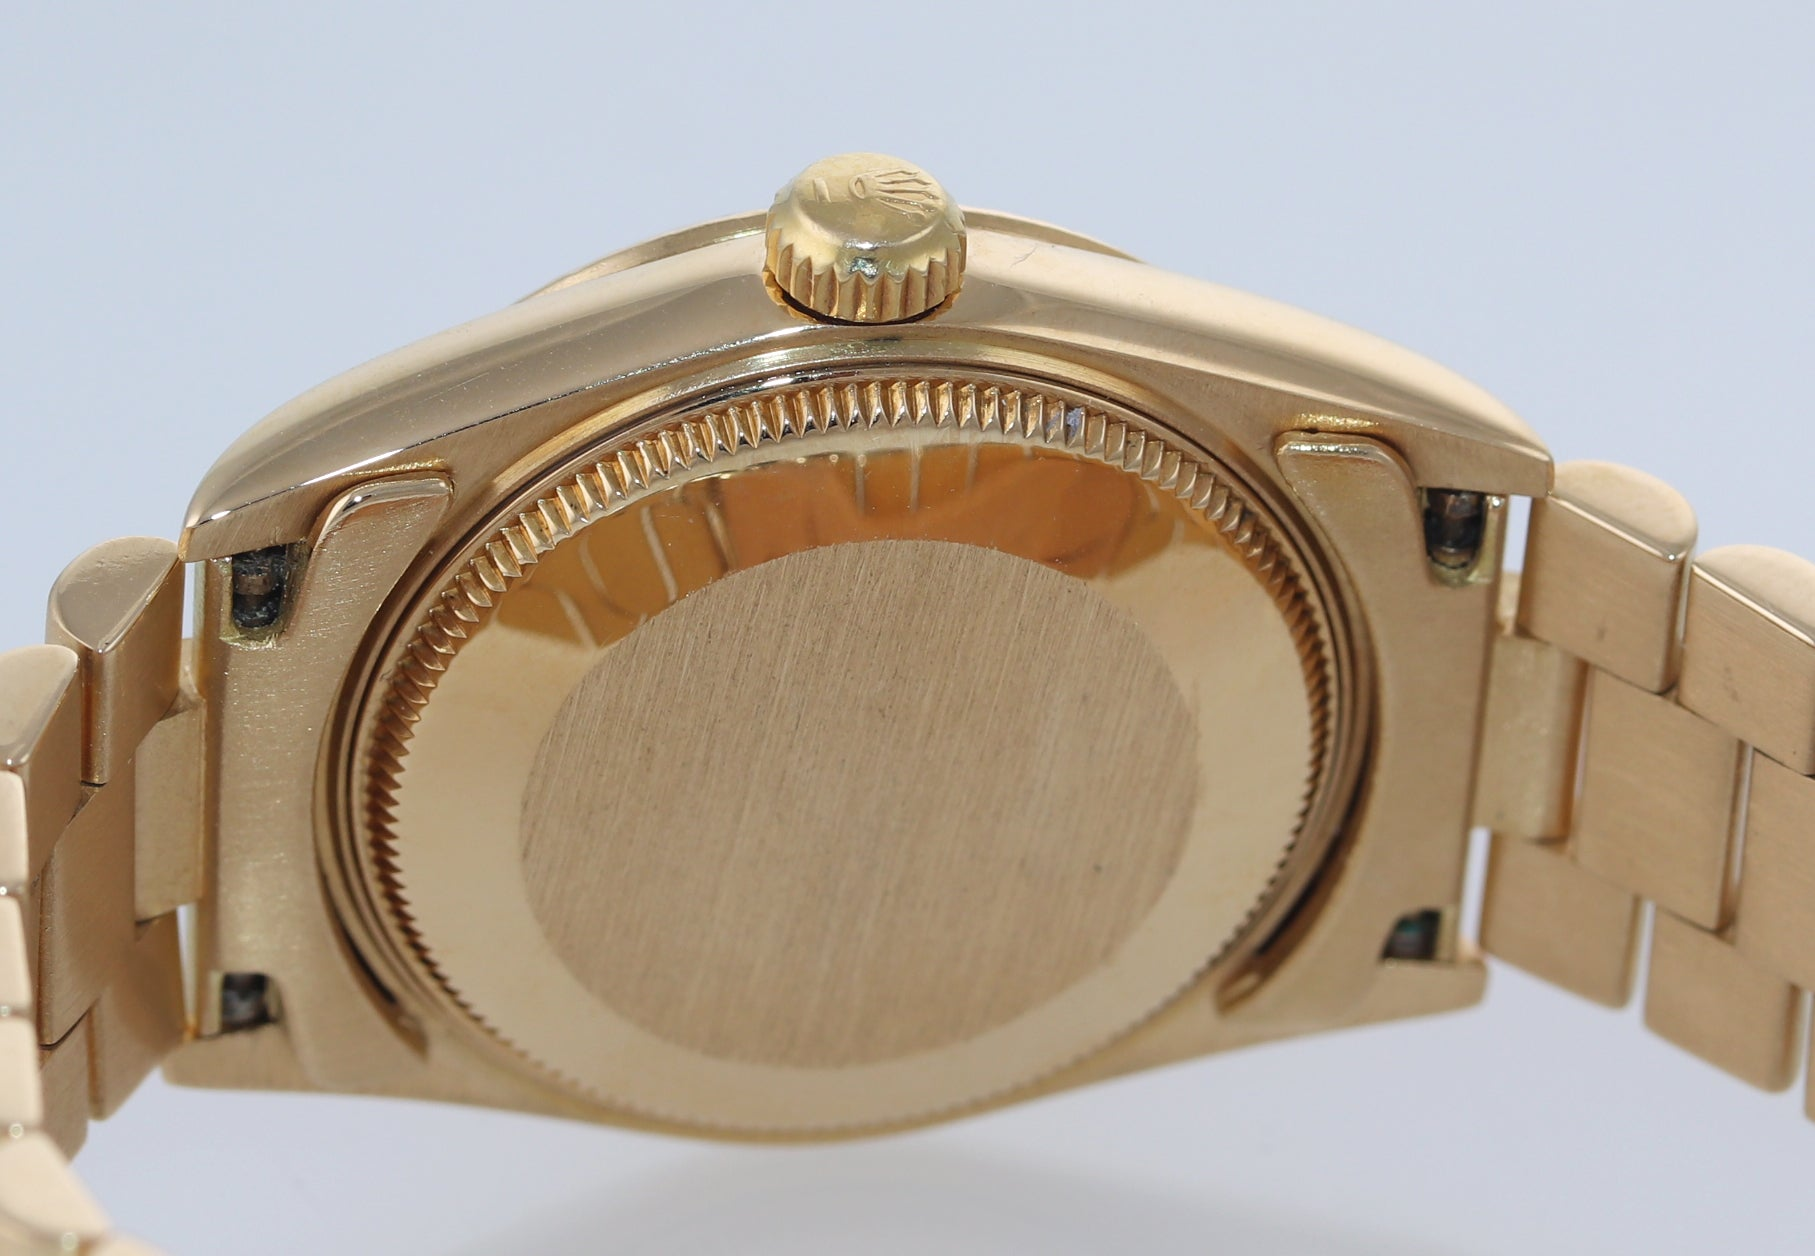 PAPERS Rolex President 68278 Midsize 31mm 18k Gold Champagne Dial Watch Box